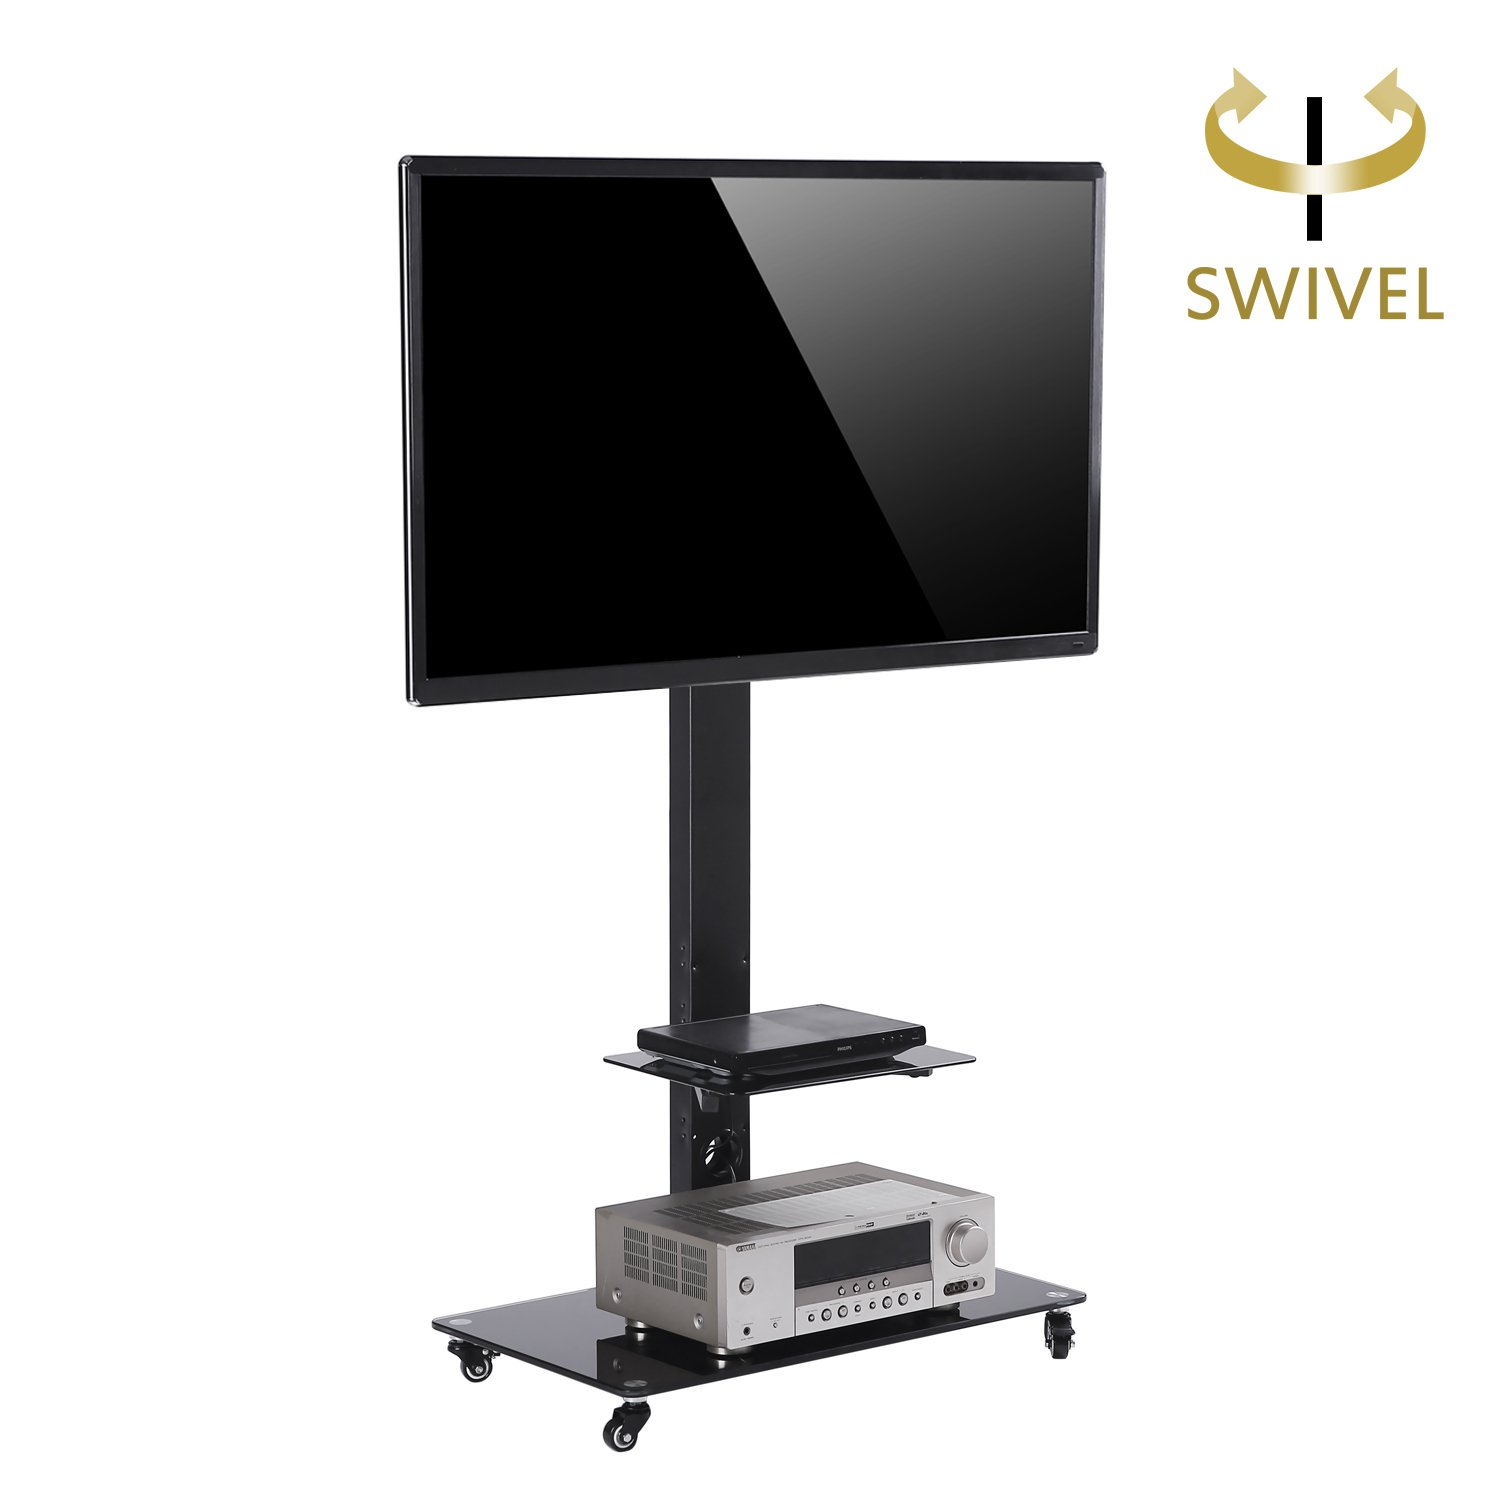 TAVR Moblile Floor TV Stand Cart with Audio Shelf and Heavy Duty Lockable Caster Wheels, for 37 to 70 inch LCD LED Oled Qled Flat Panel and Curved TVs ,TF5001 …